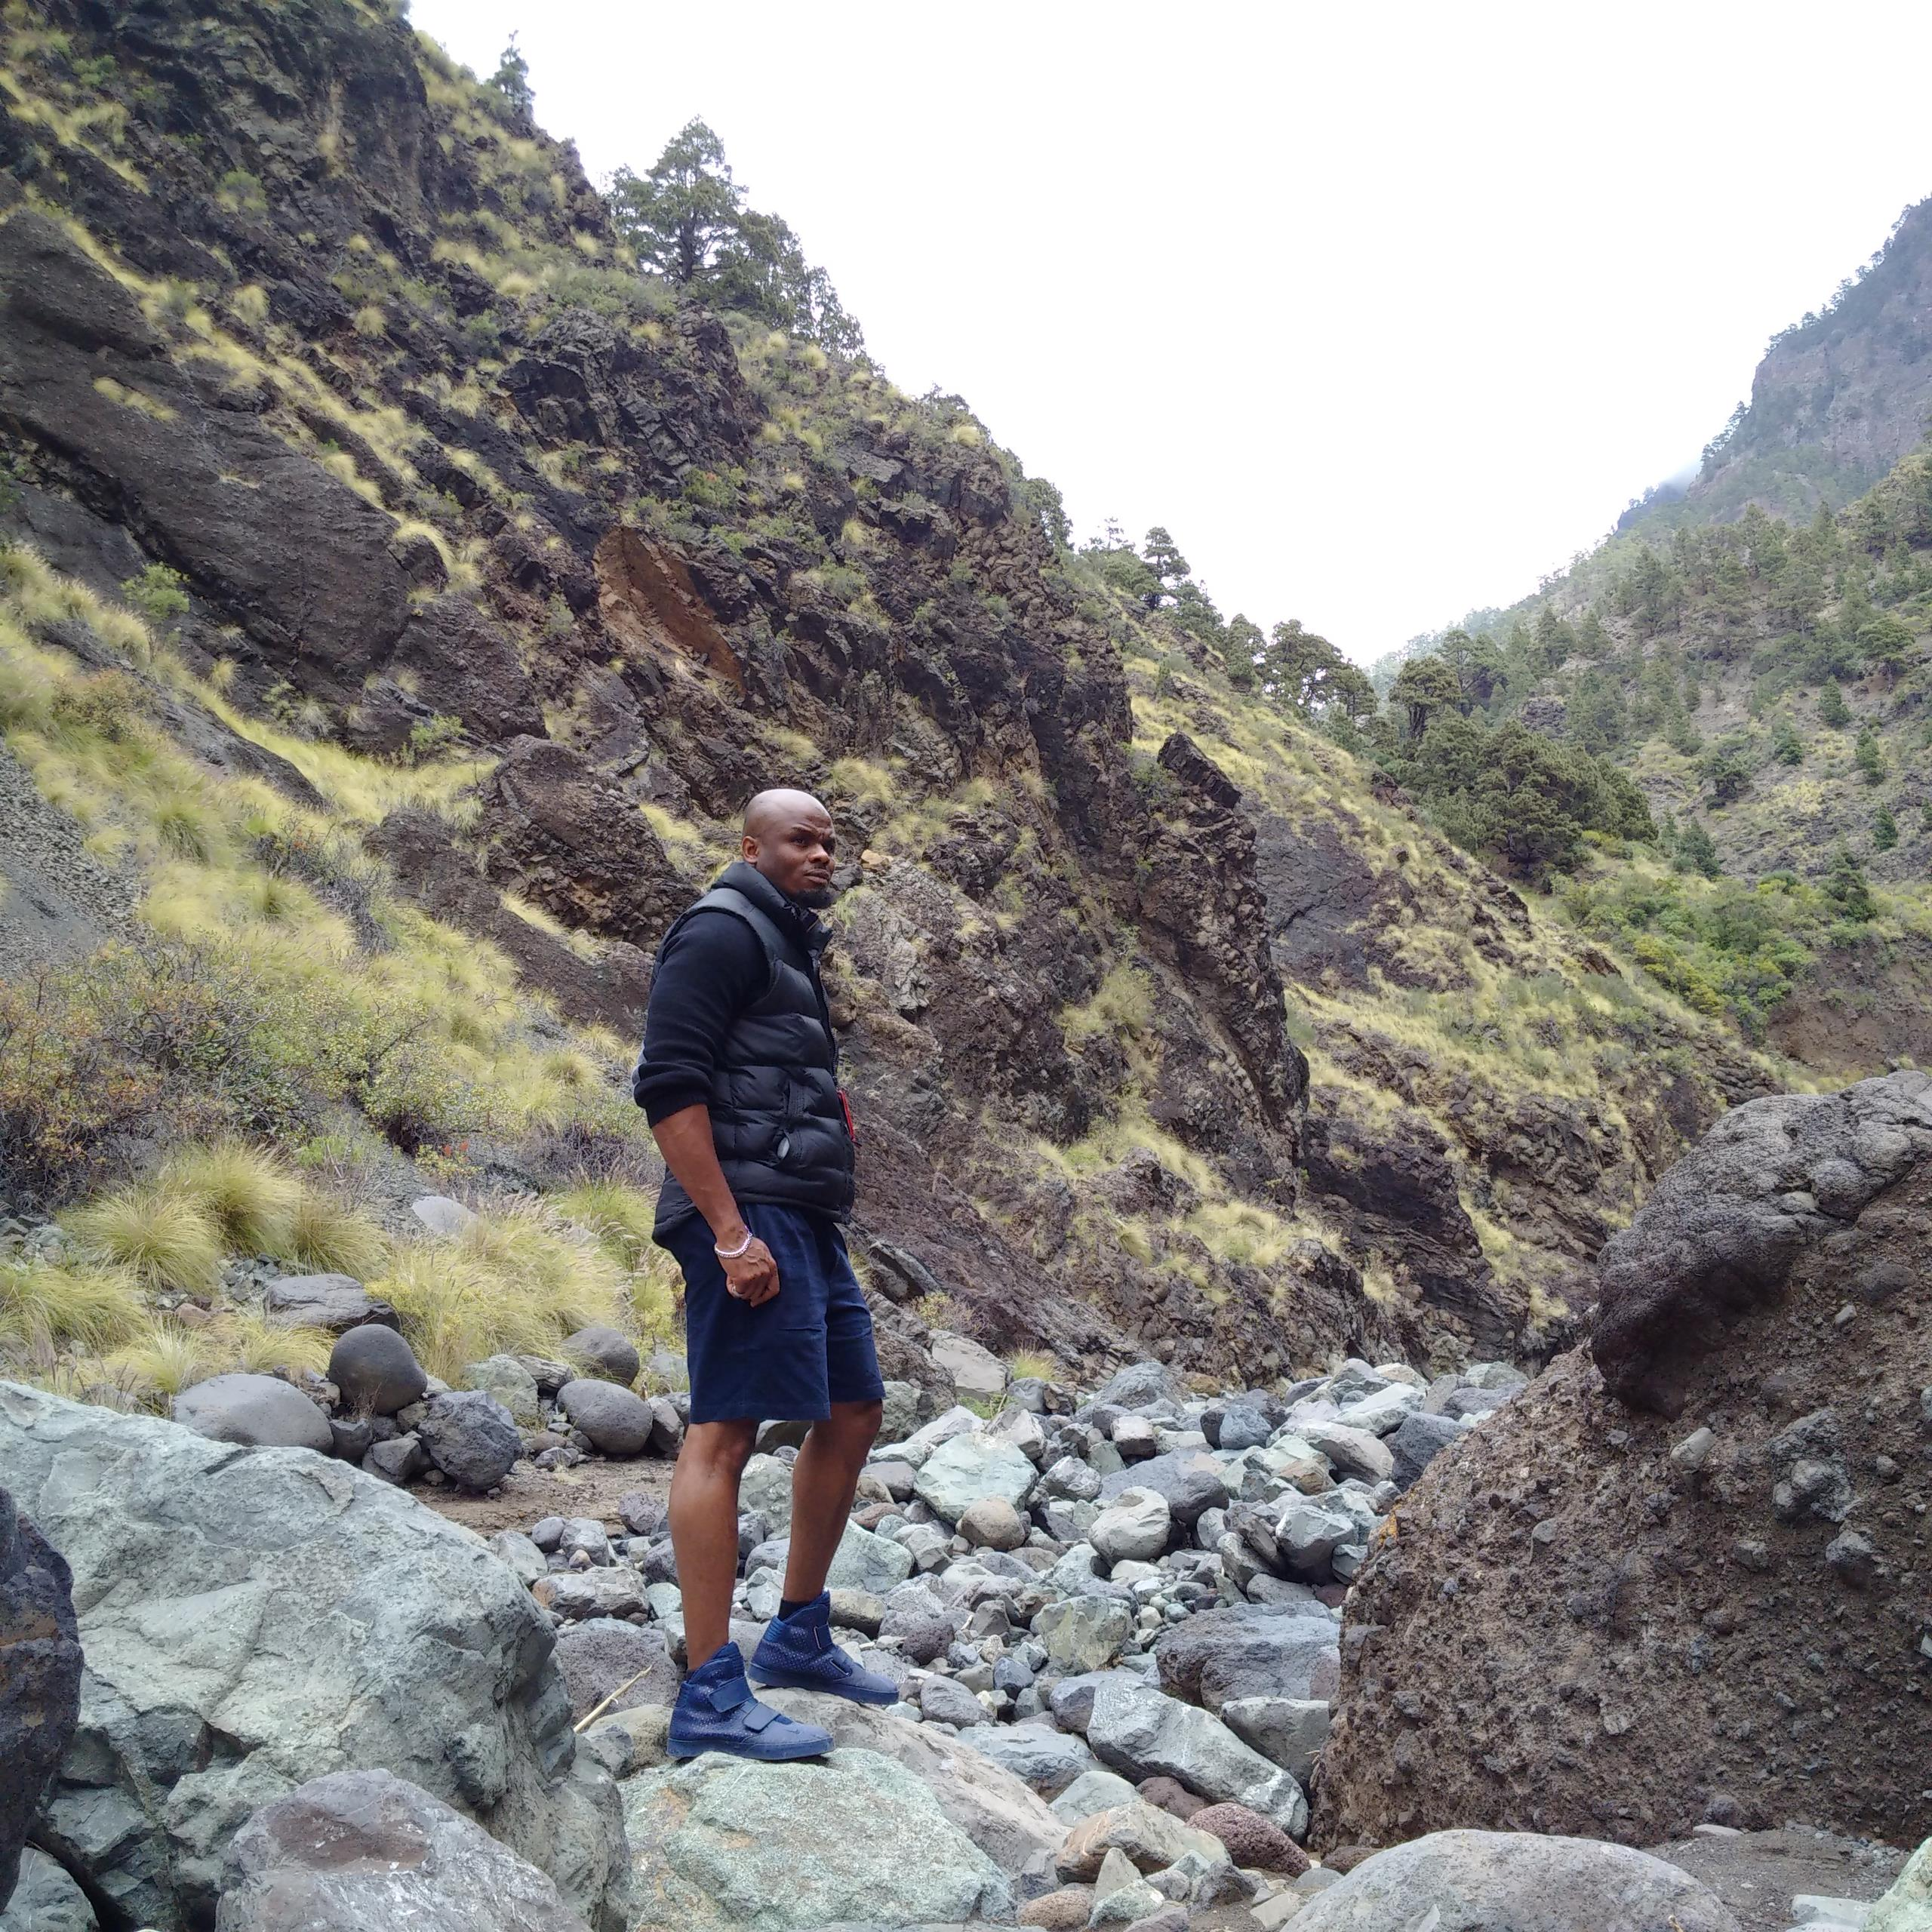 Olusegun on a visit to the volcanic settlements of La Palma in the Canary Islands